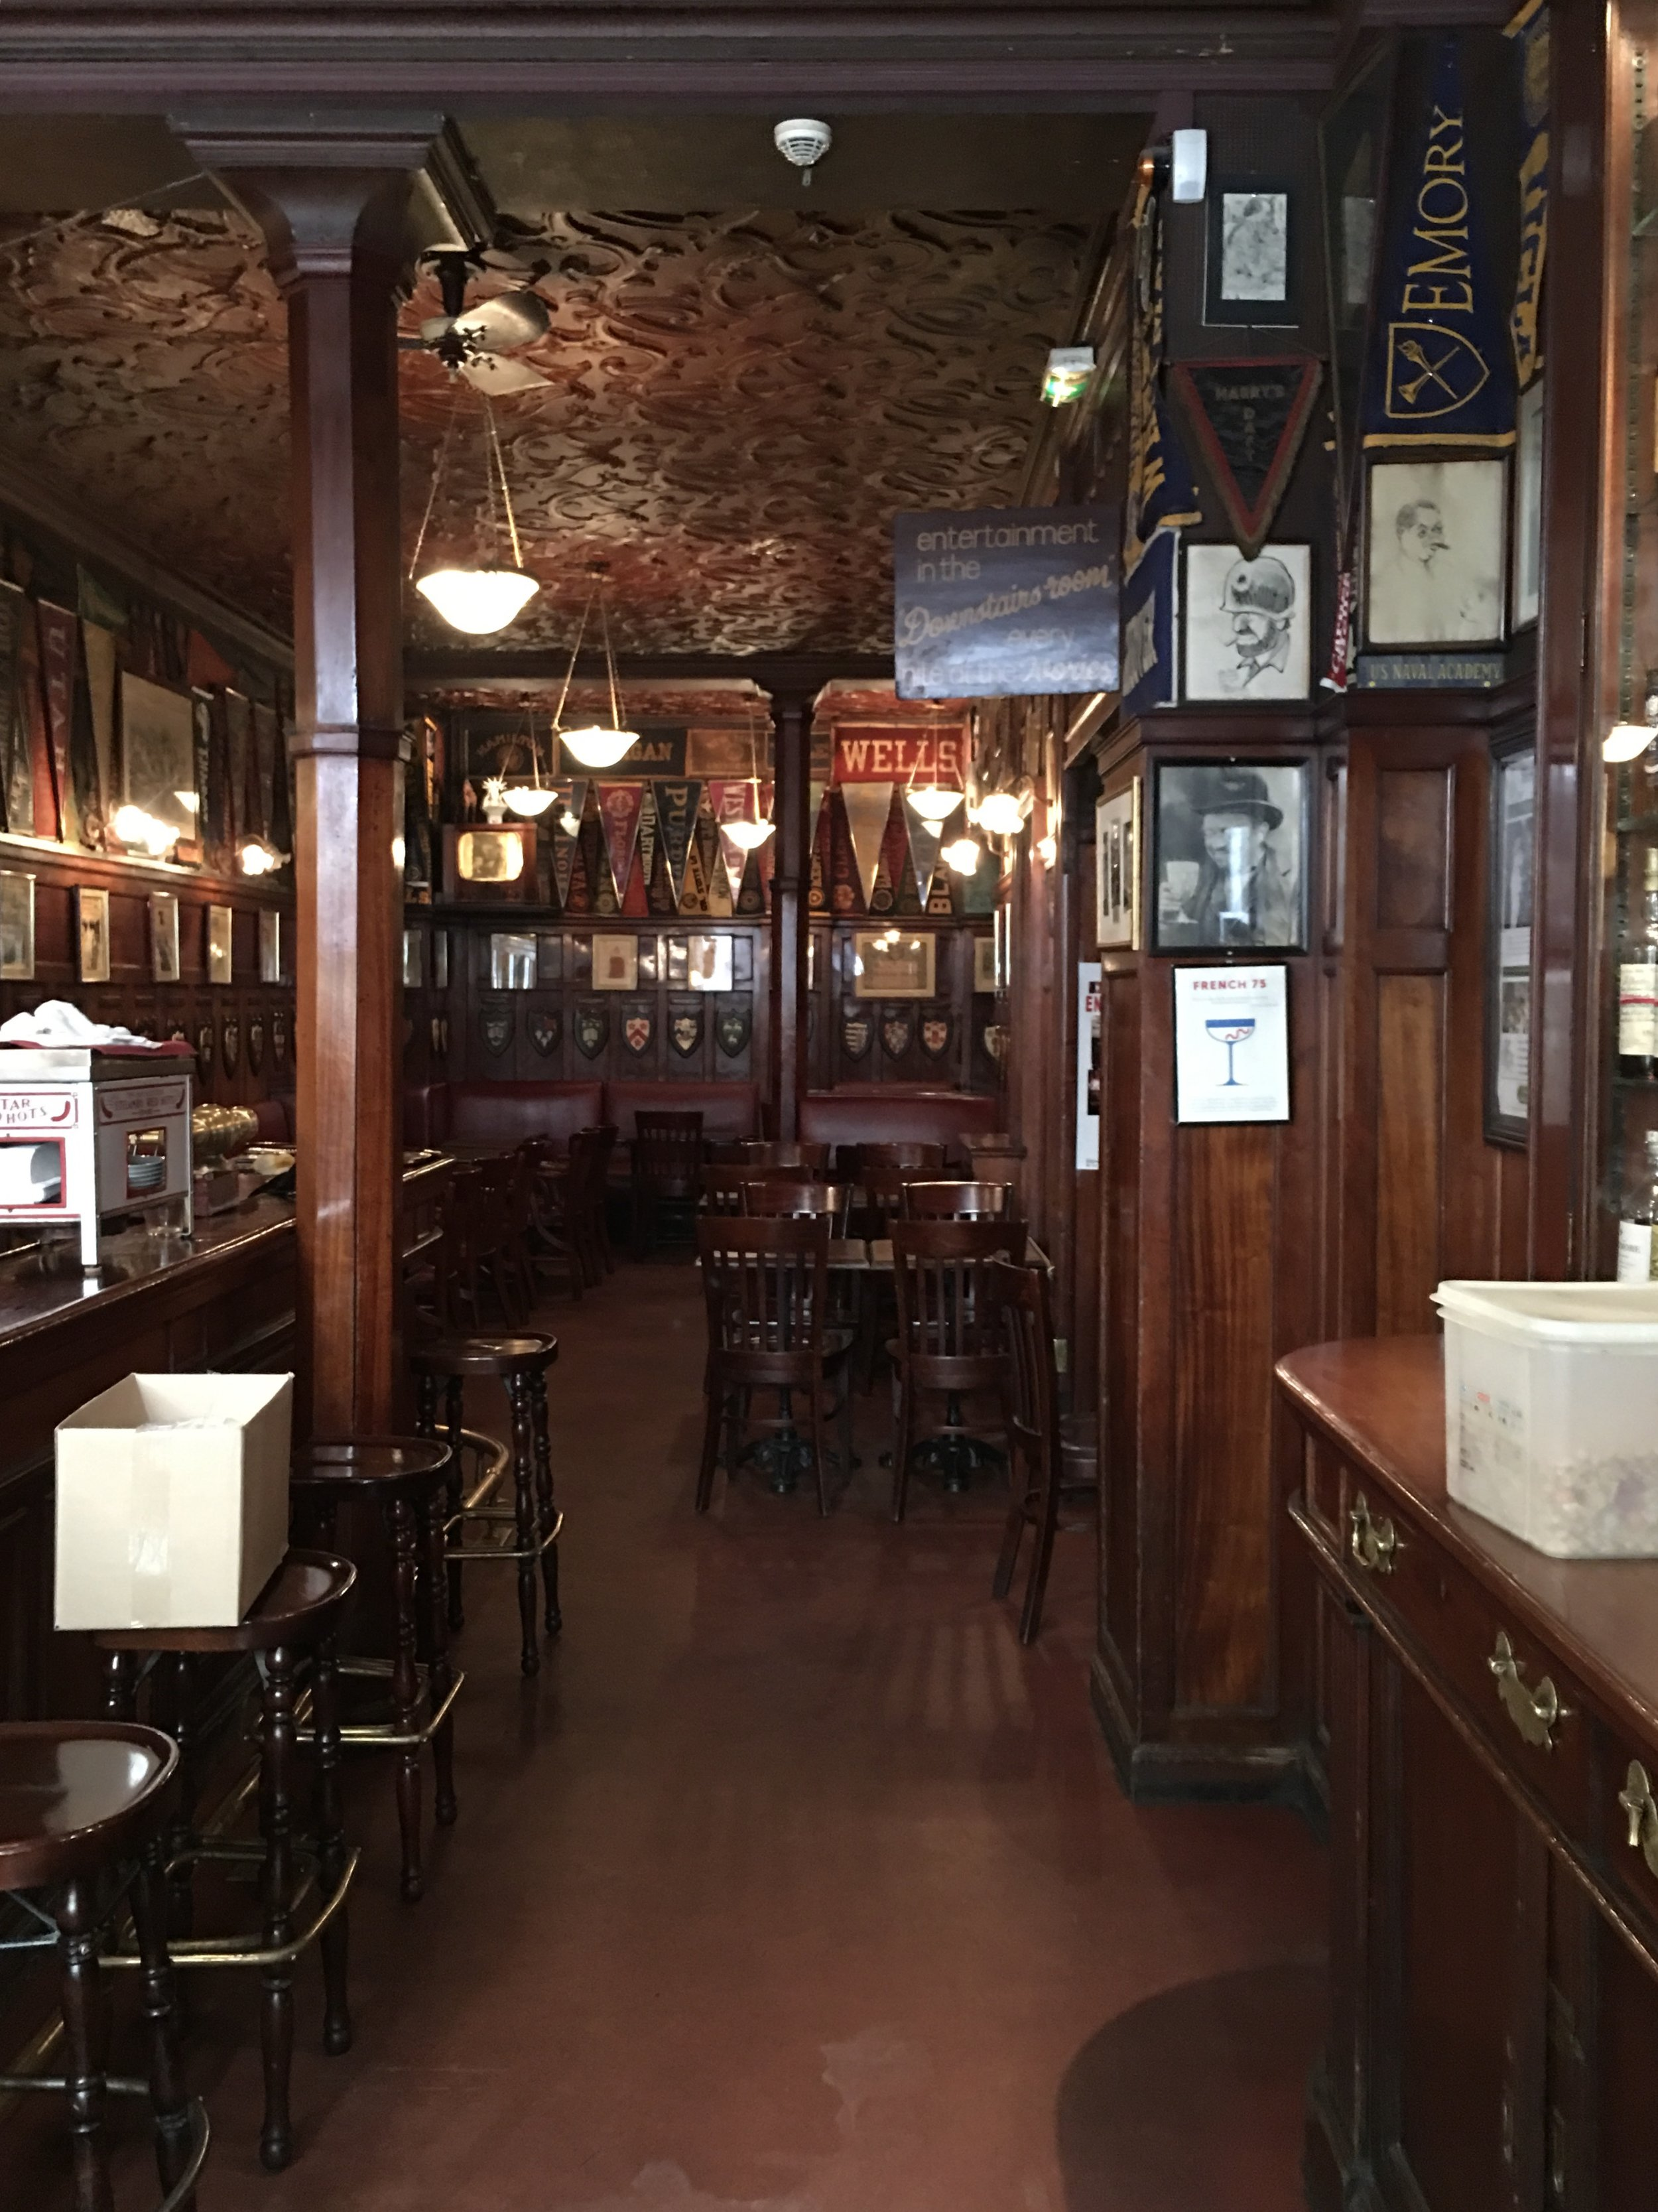 I obviously went inside Harry's New York Bar even though it was closed.